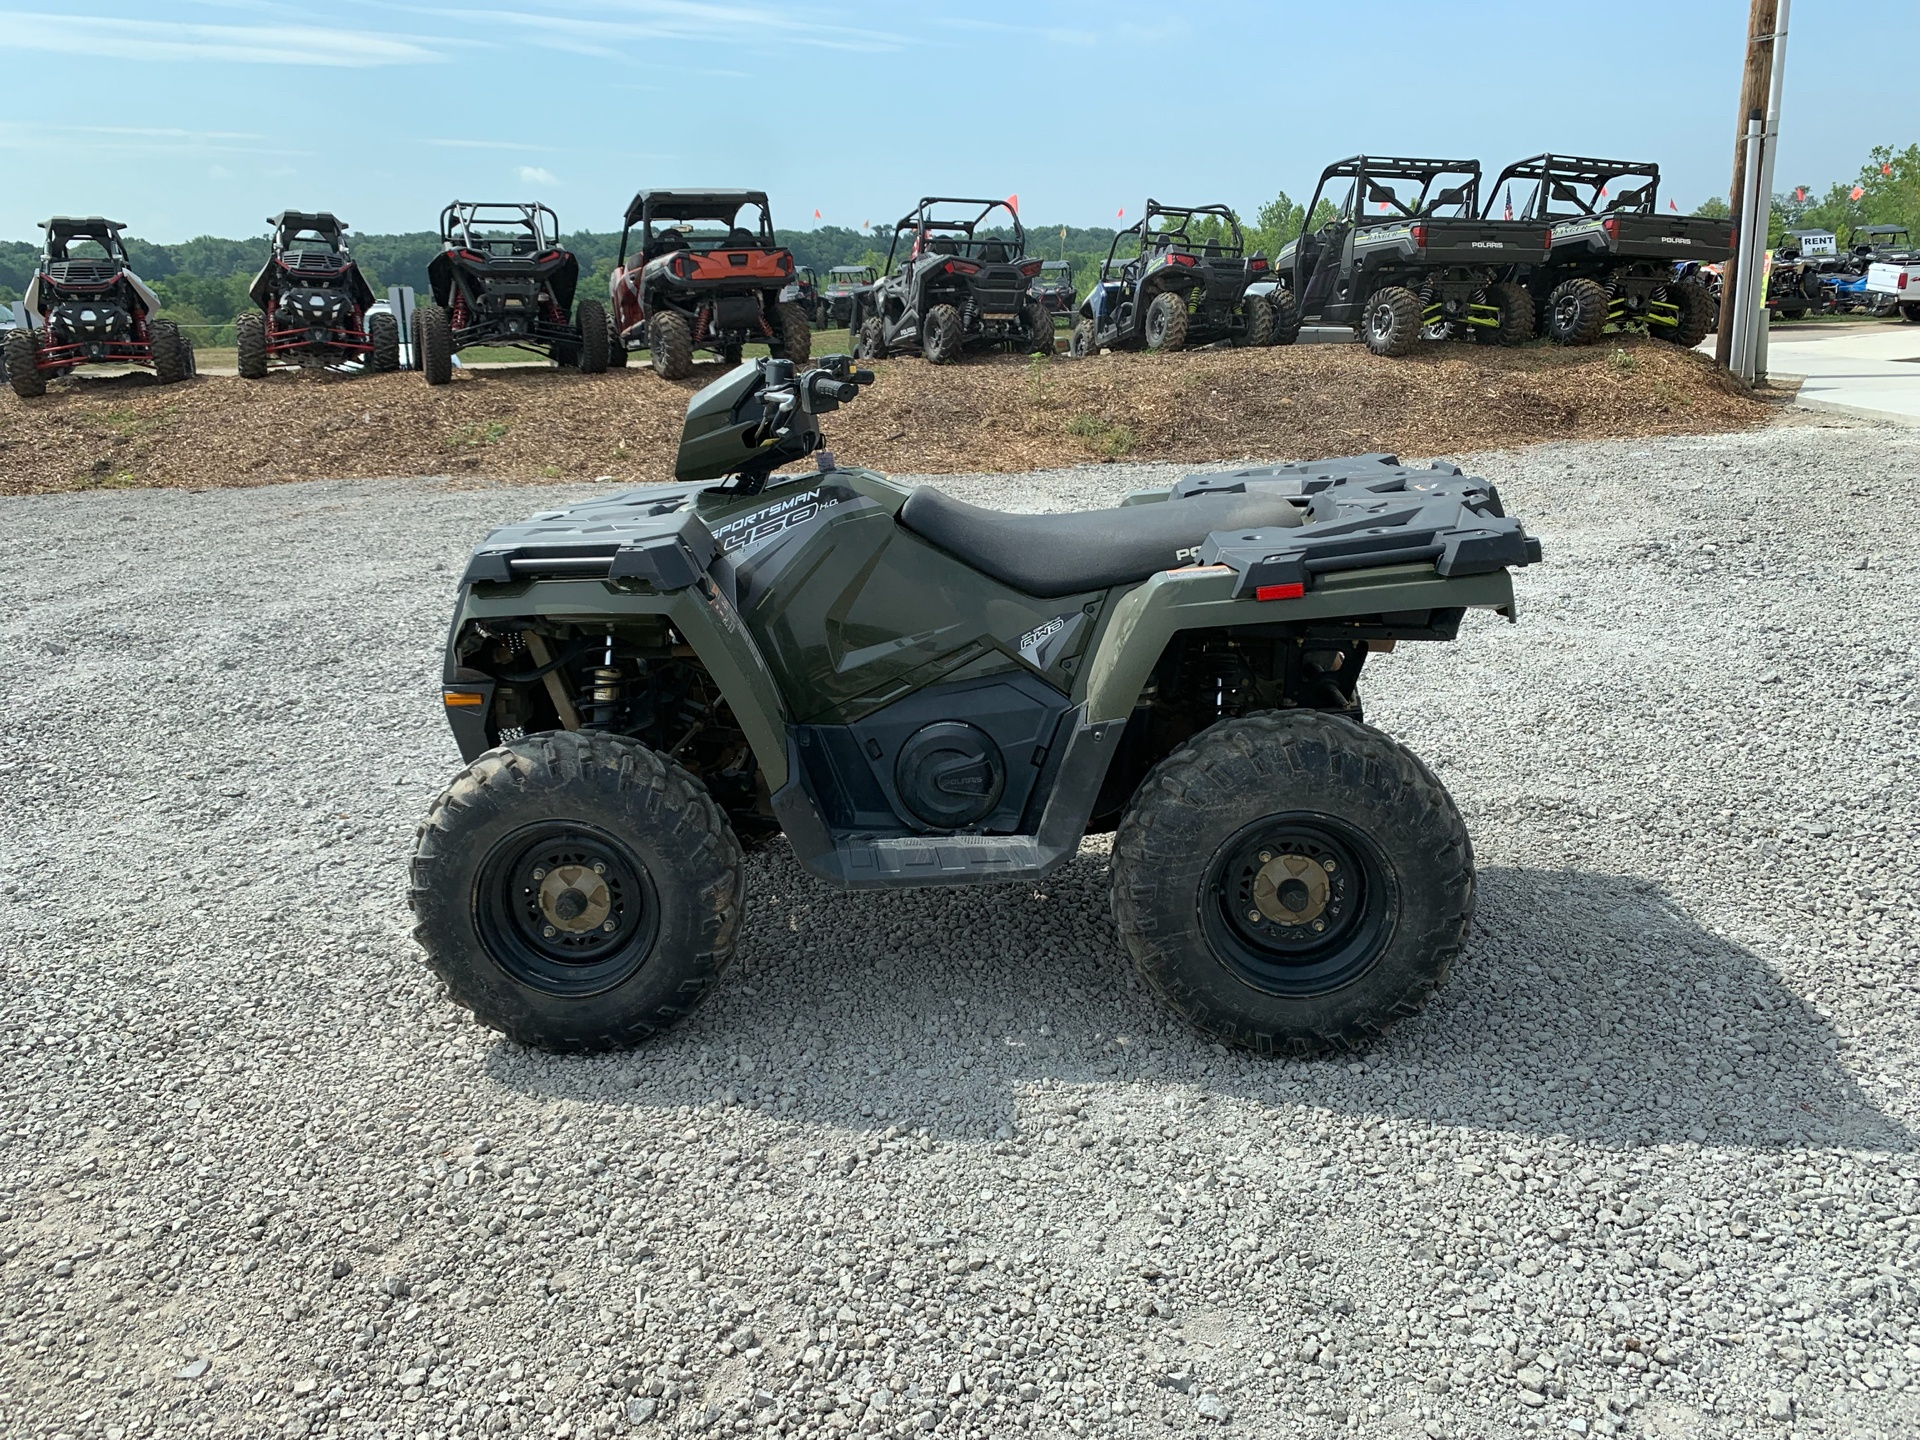 2018 Polaris Sportsman 450 H.O. in Attica, Indiana - Photo 5